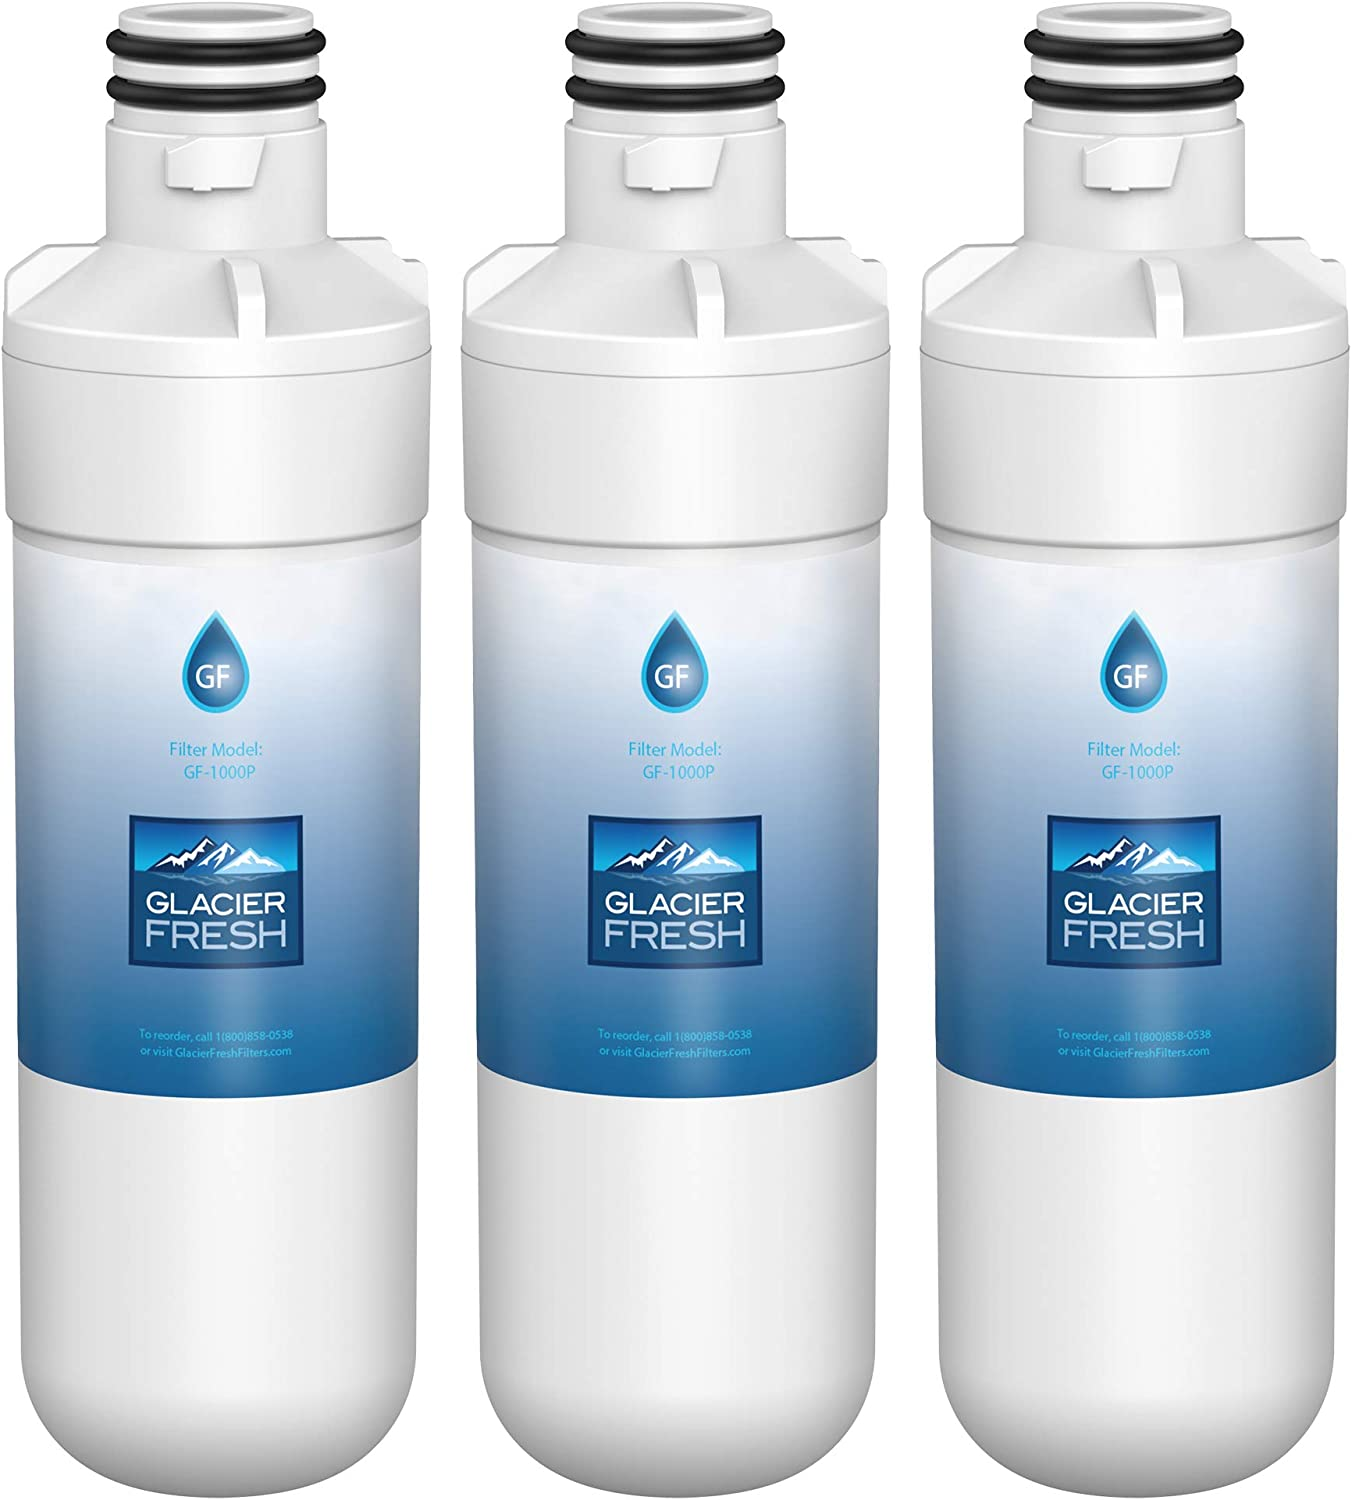 GLACIER FRESH LT1000P Refrigerator Water Filter Compatible with LG LT1000P, LT1000P, LT1000PC, MDJ64844601, 9980 Water Filter, 3 Pack